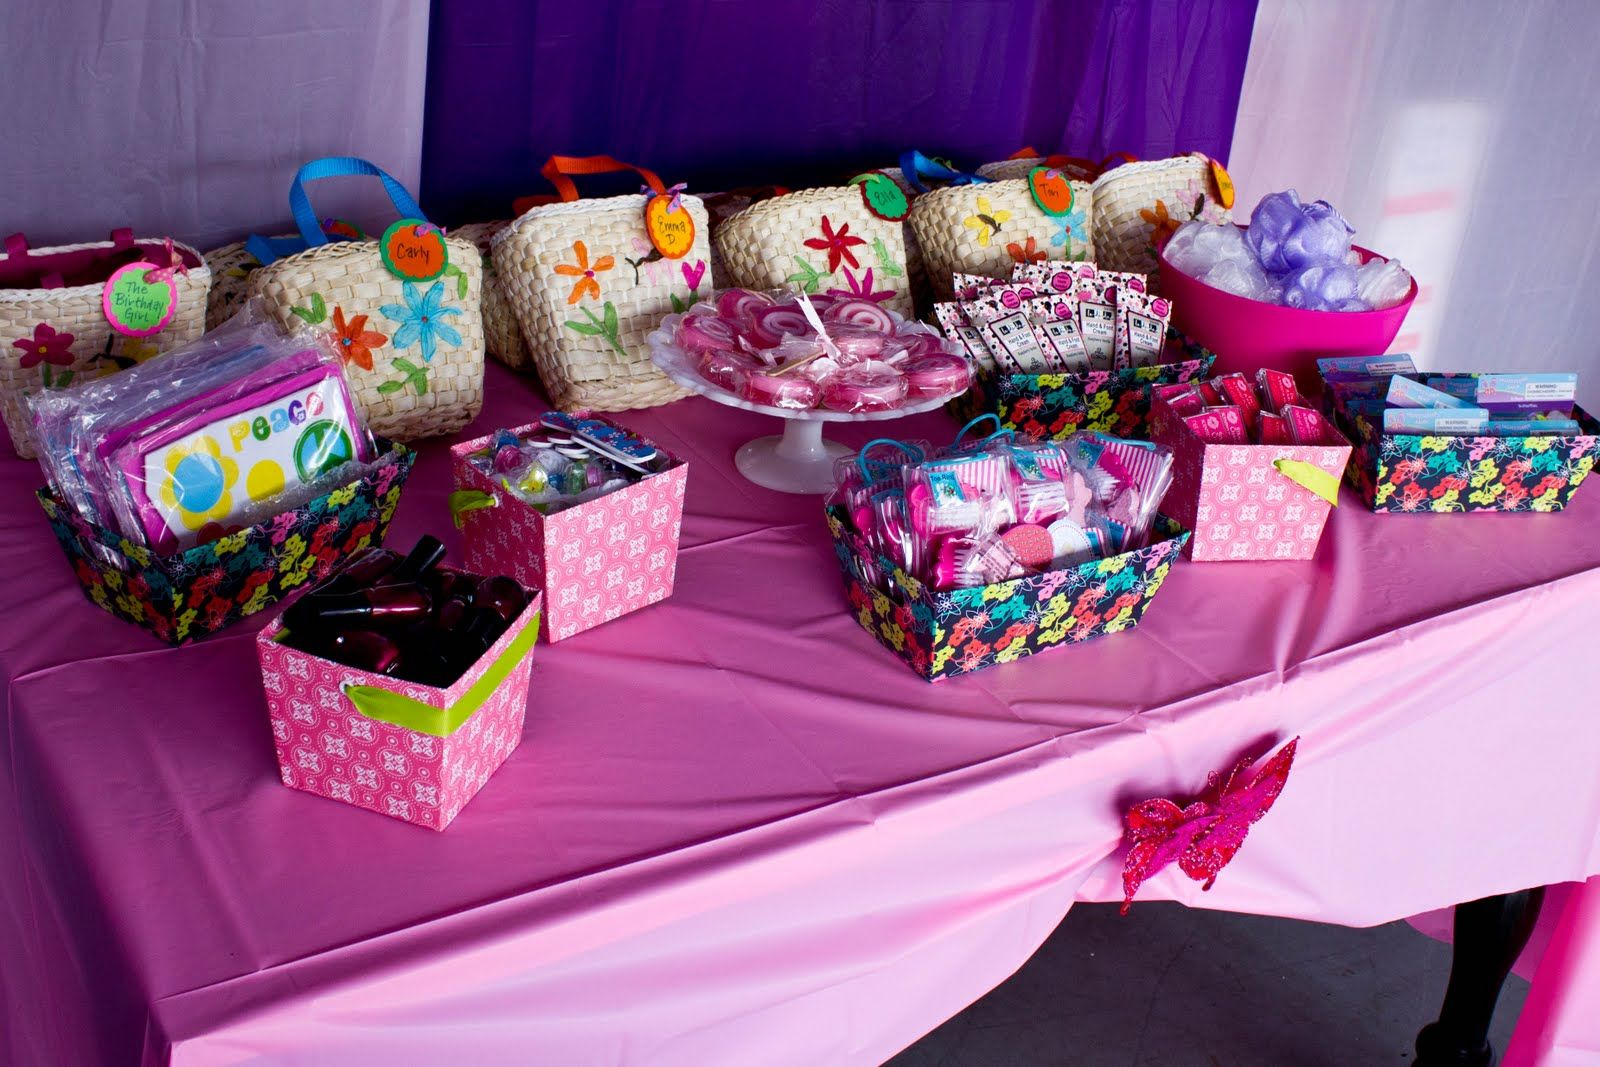 spa party ideas for girls birthday Bliss Images and Beyond A